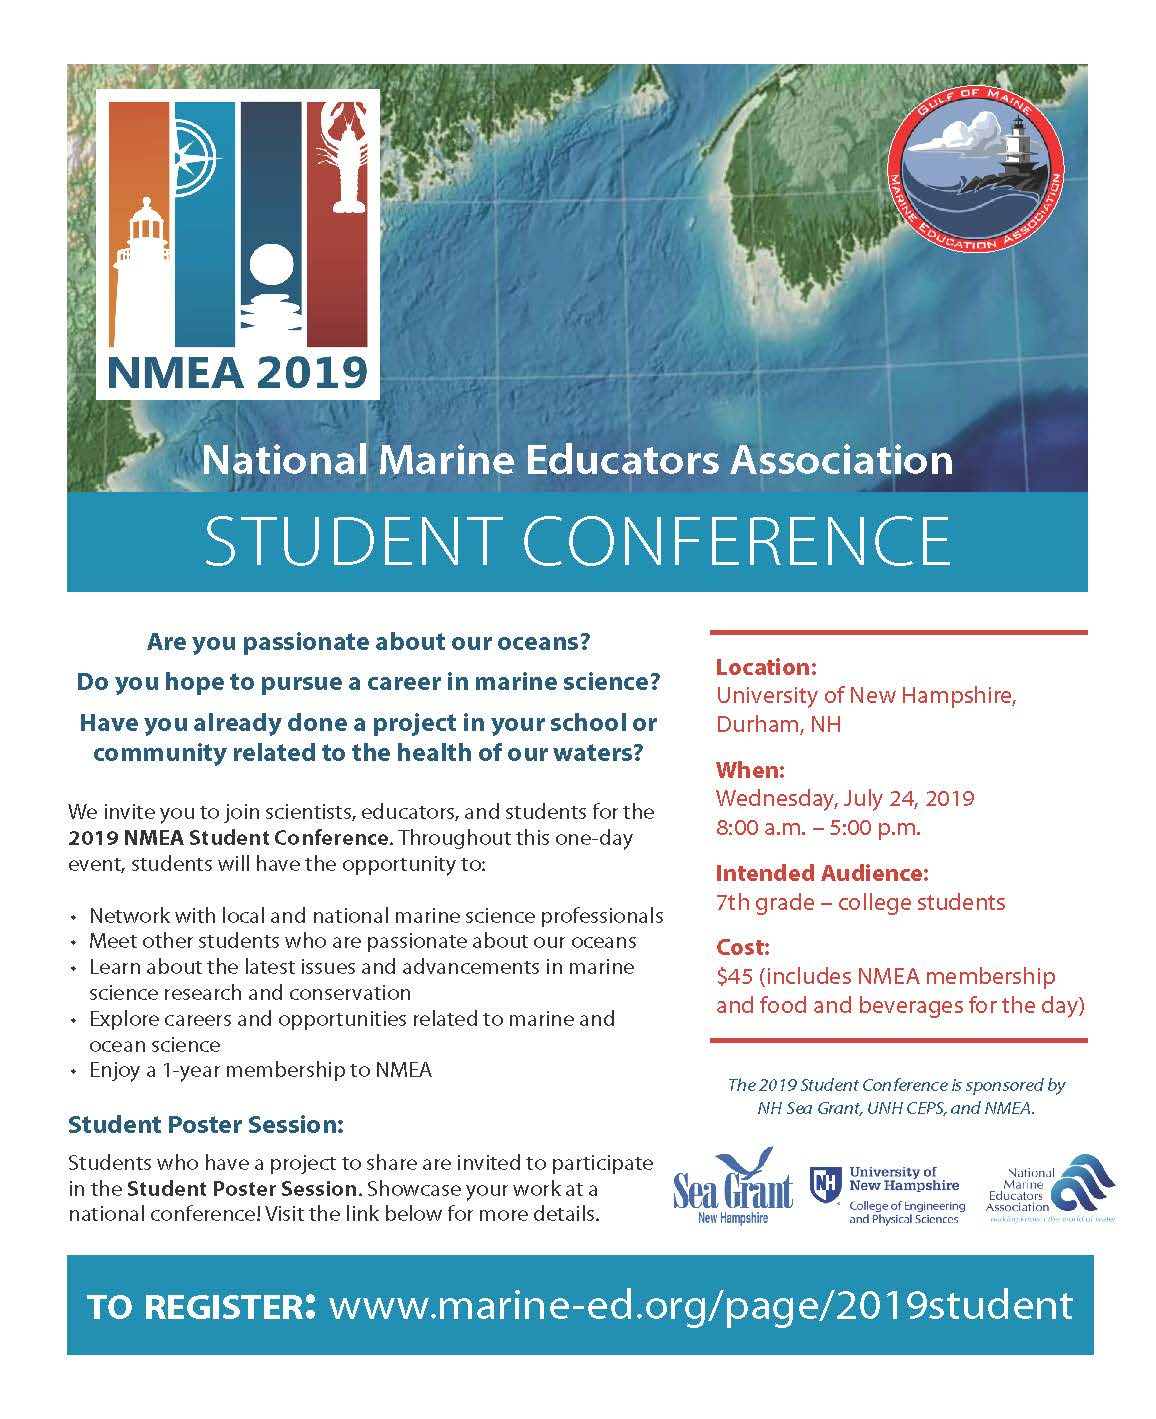 NMEA 2019 Conference - Student Conference — National Marine